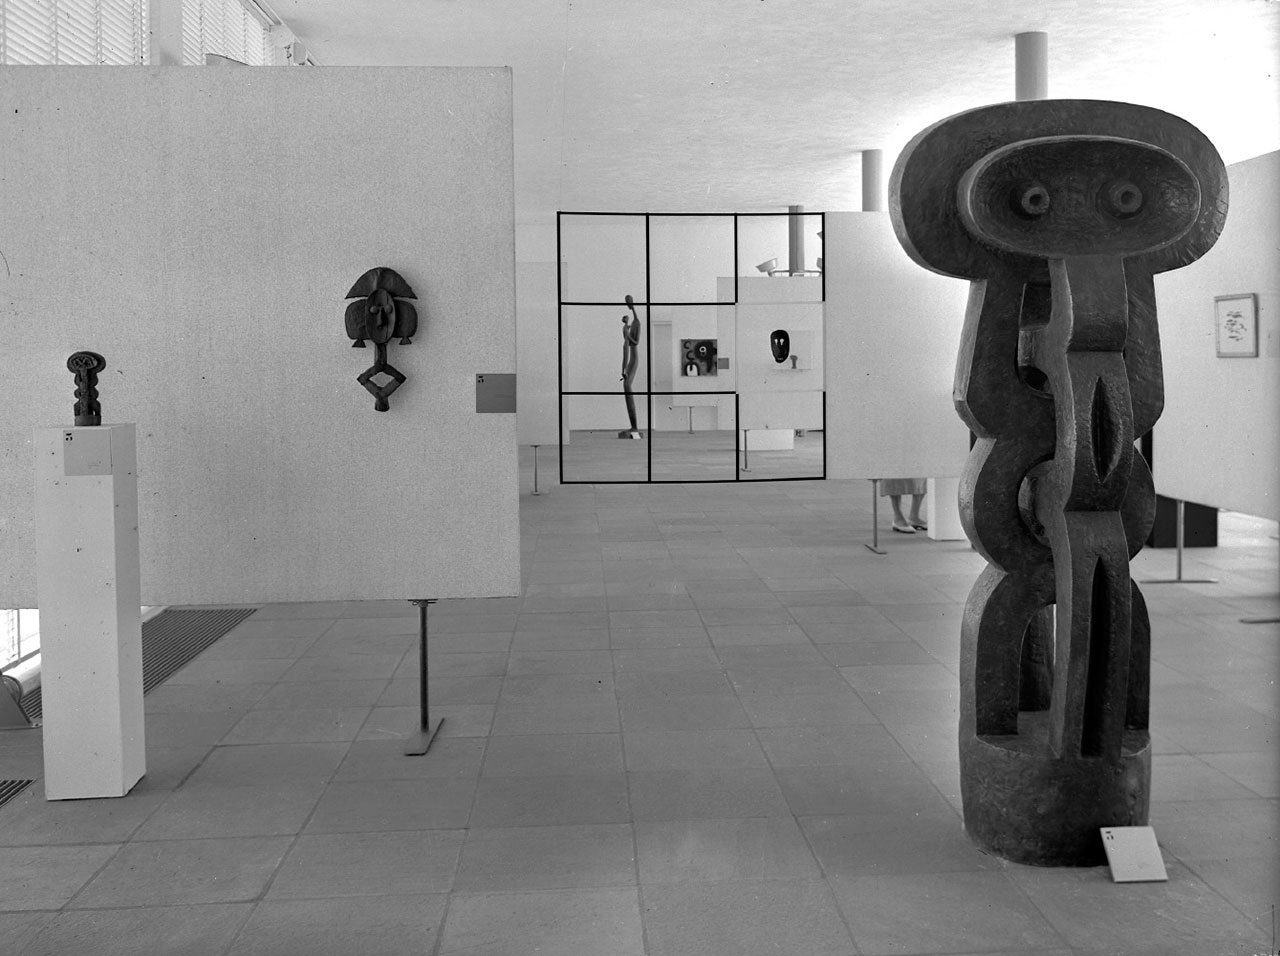 Fig 1. Installation view of exhibition Moderne Kunst Nieuw en Oud 1955.